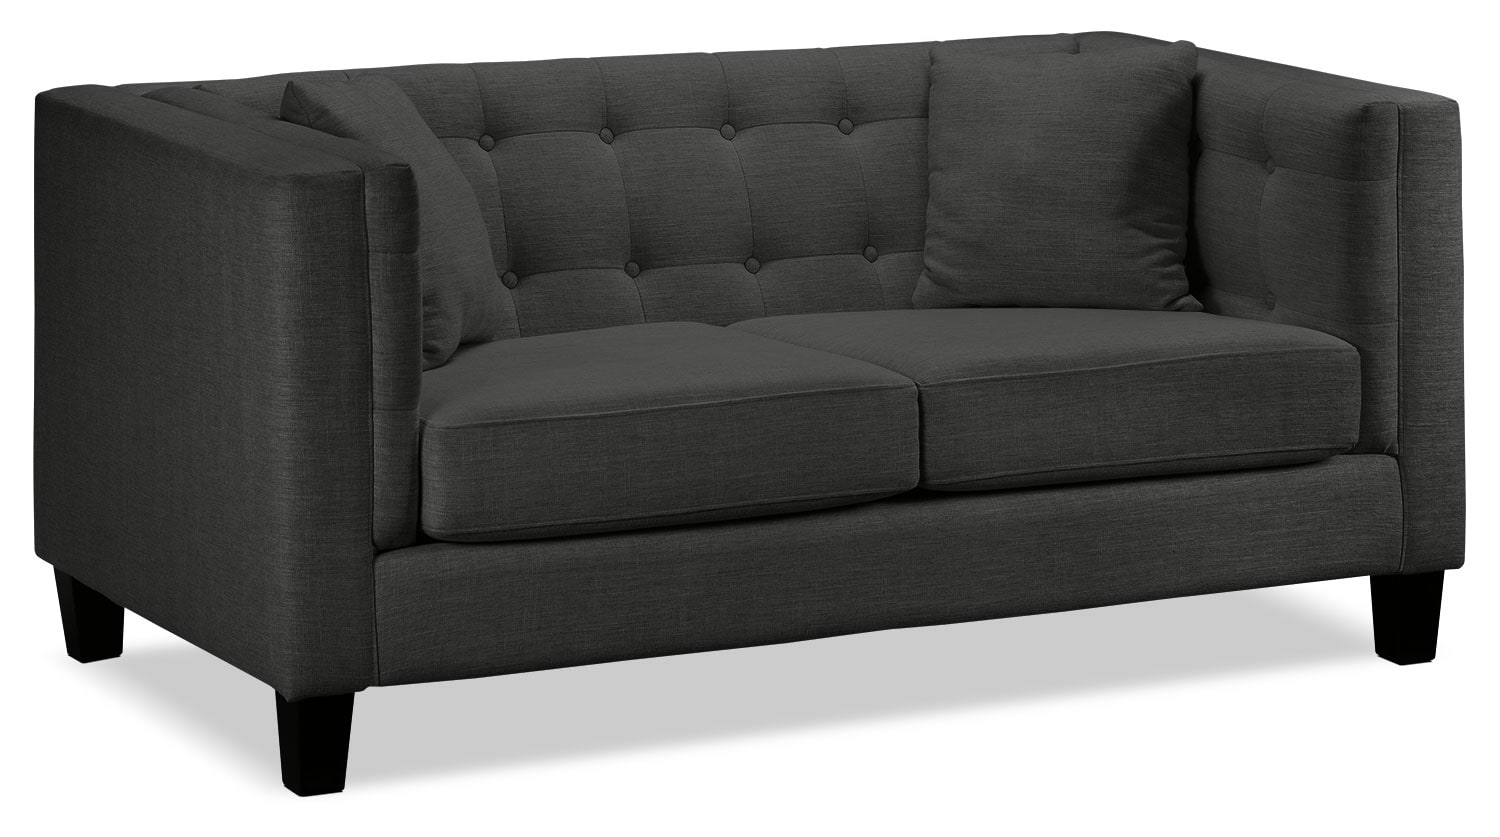 Living Room Furniture - Astin Loveseat - Dark Grey